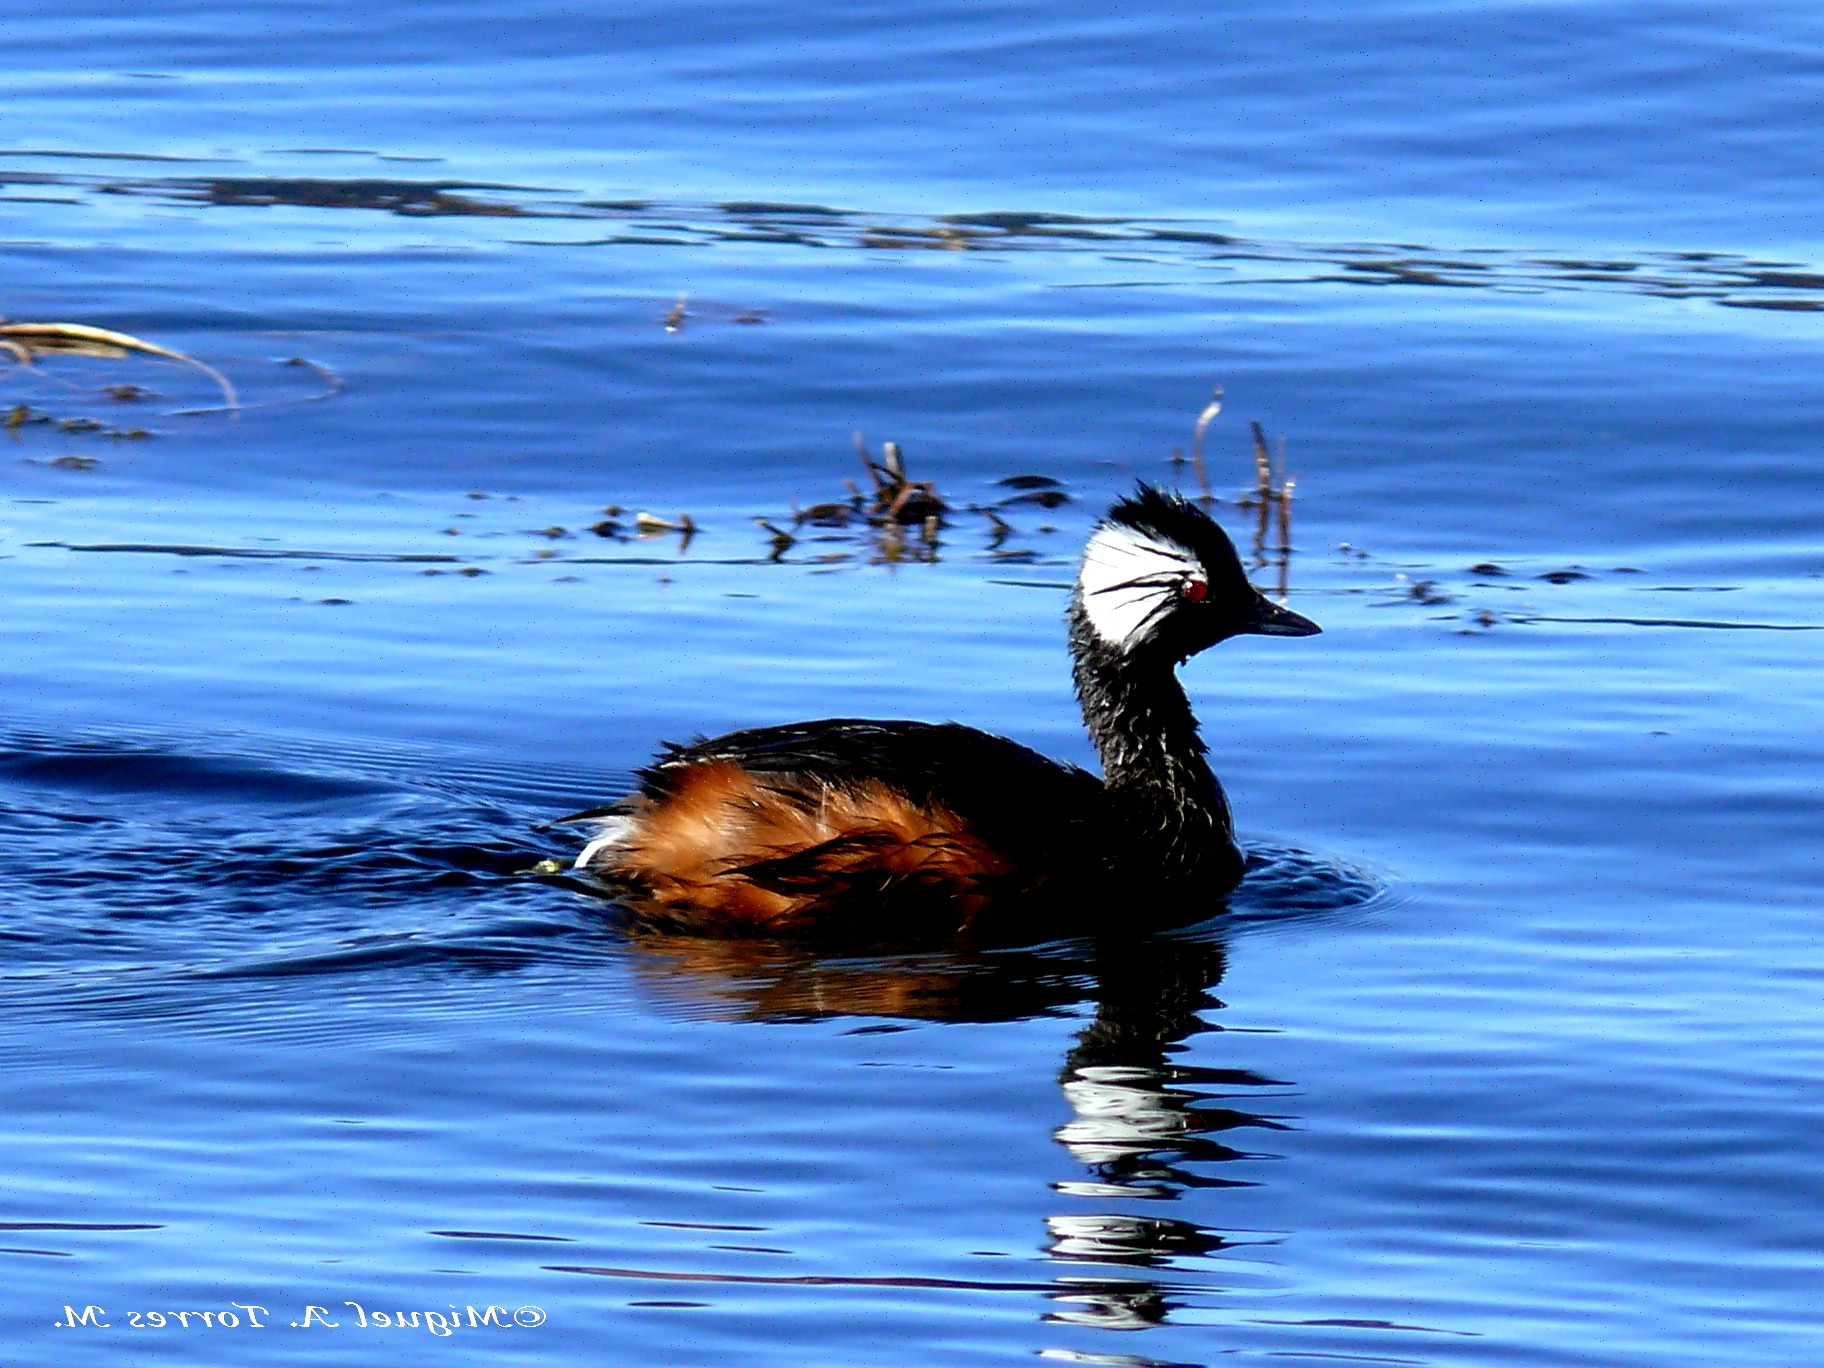 Scientific Name: White-tufted Grebe - Photo: Miguel A. Torres M.